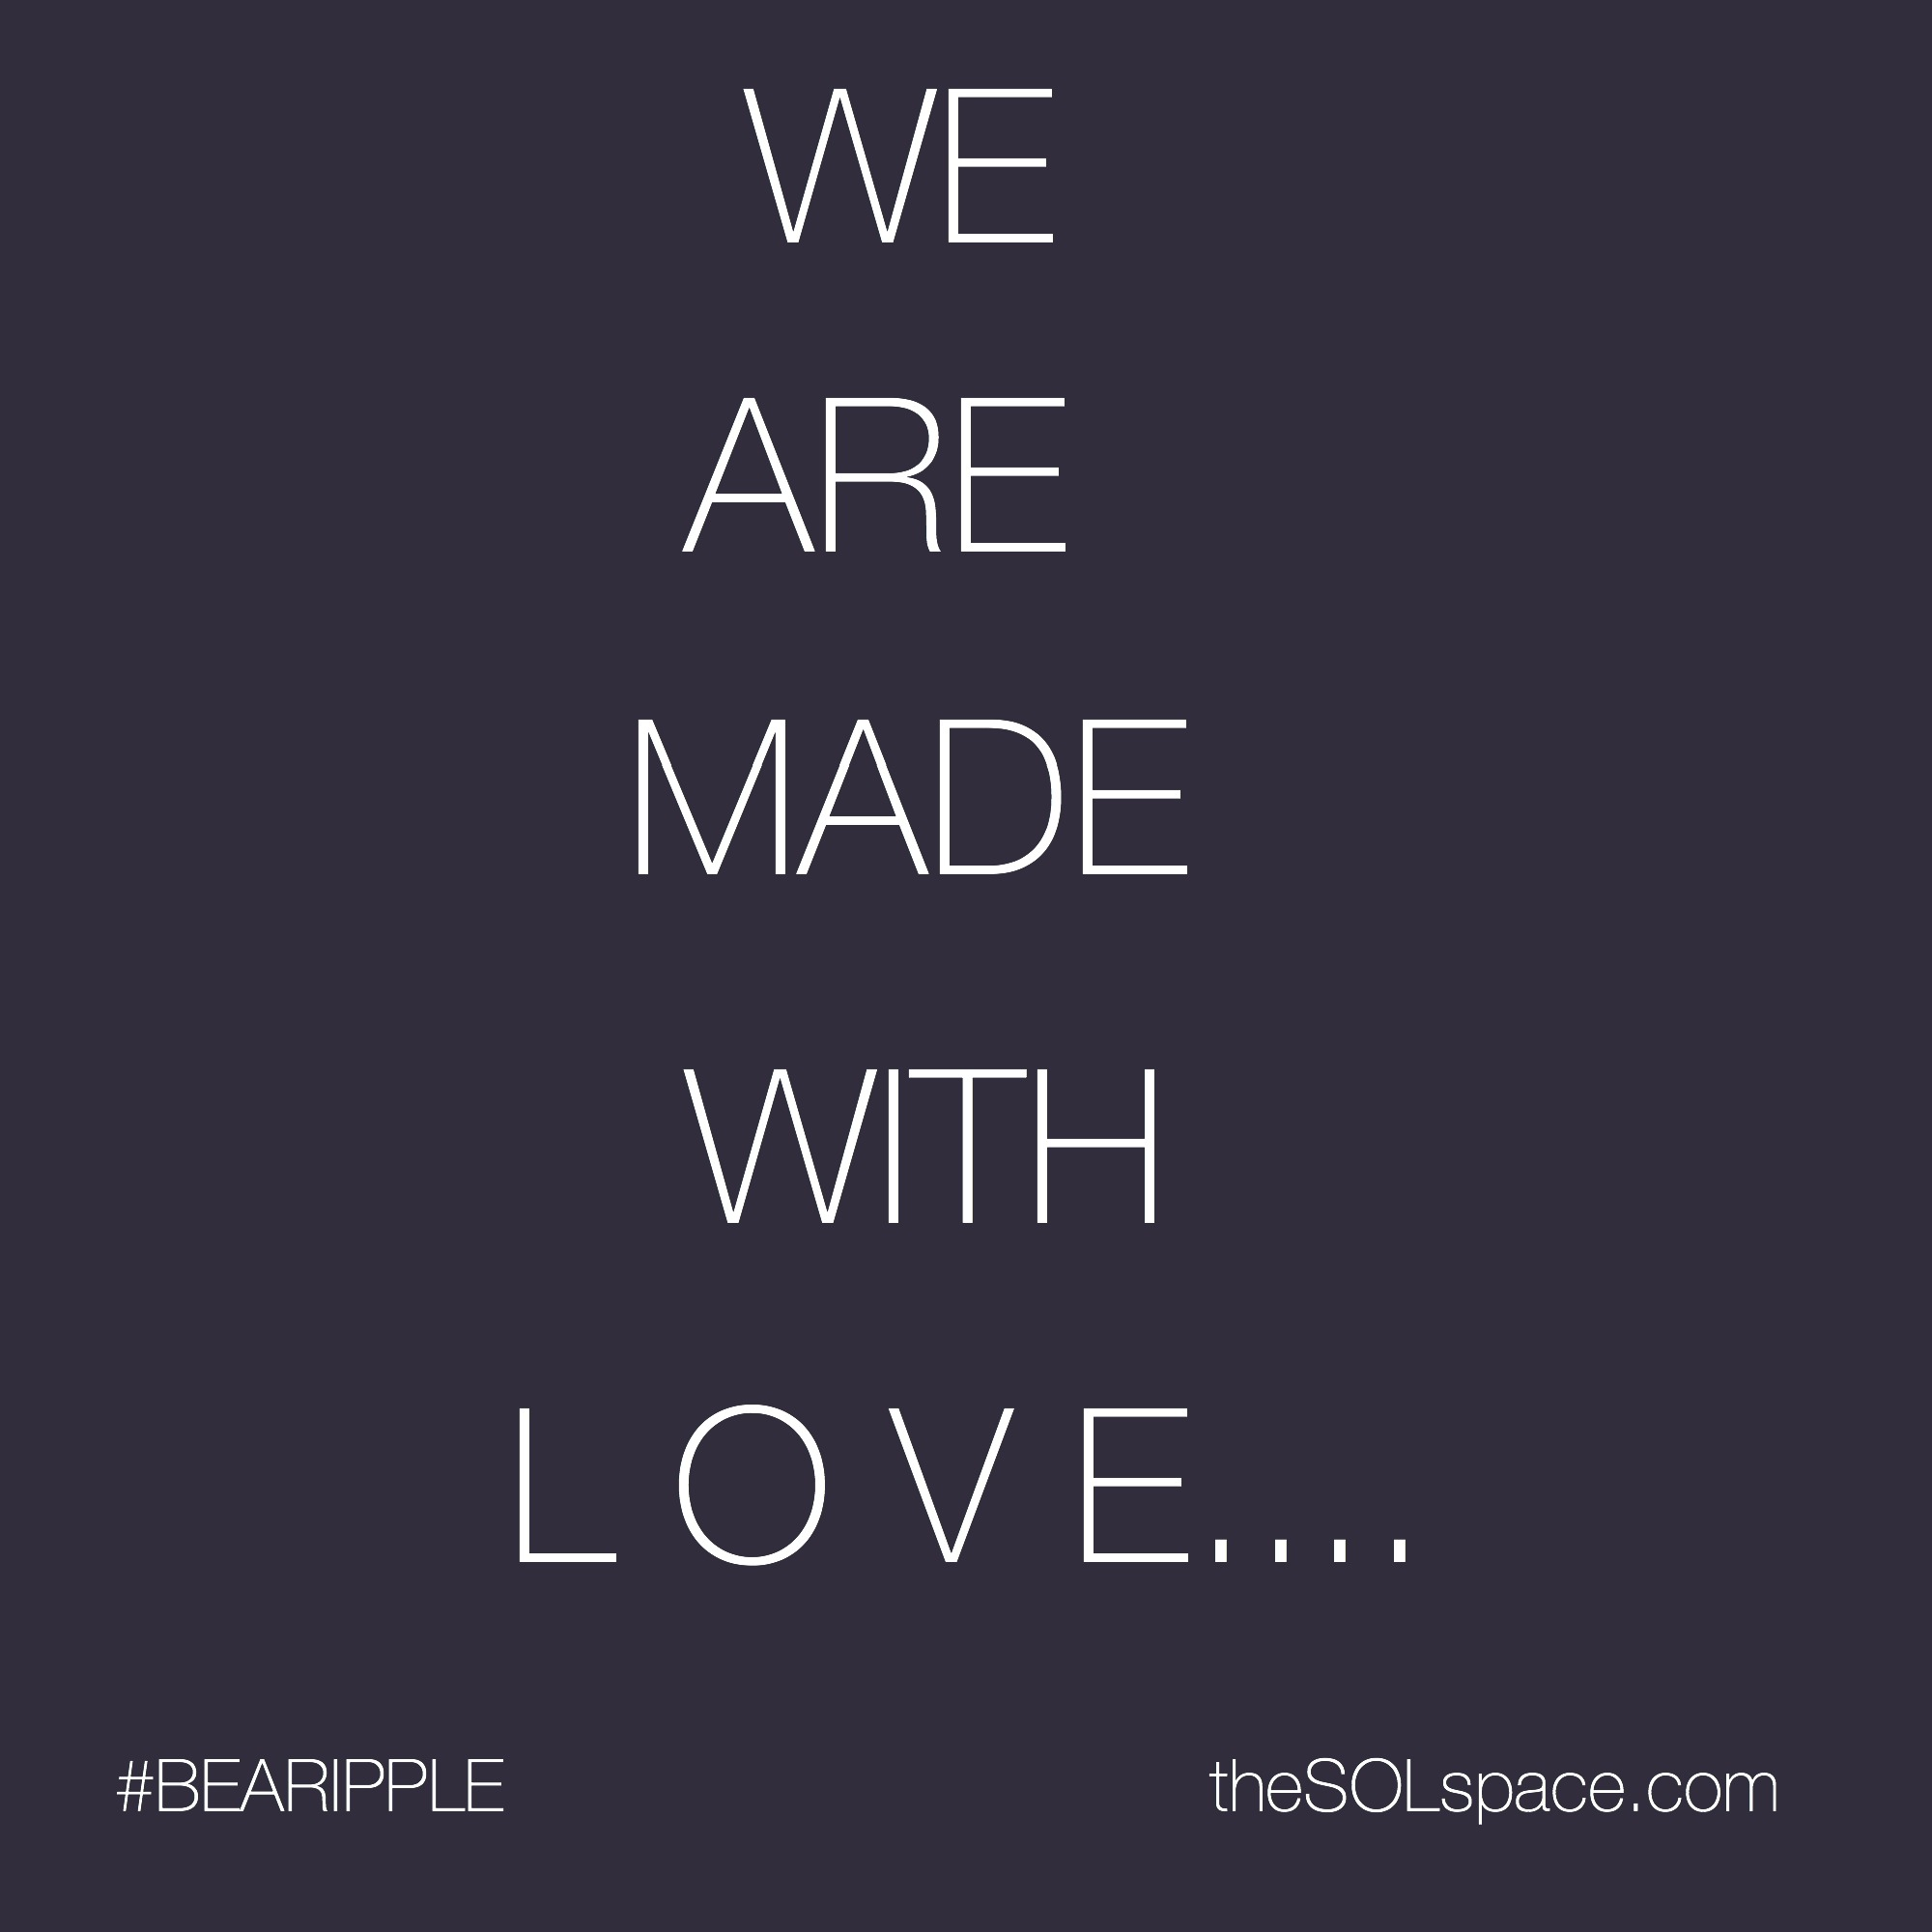 #BeARipple... We are made with LOVE @theSOLspace